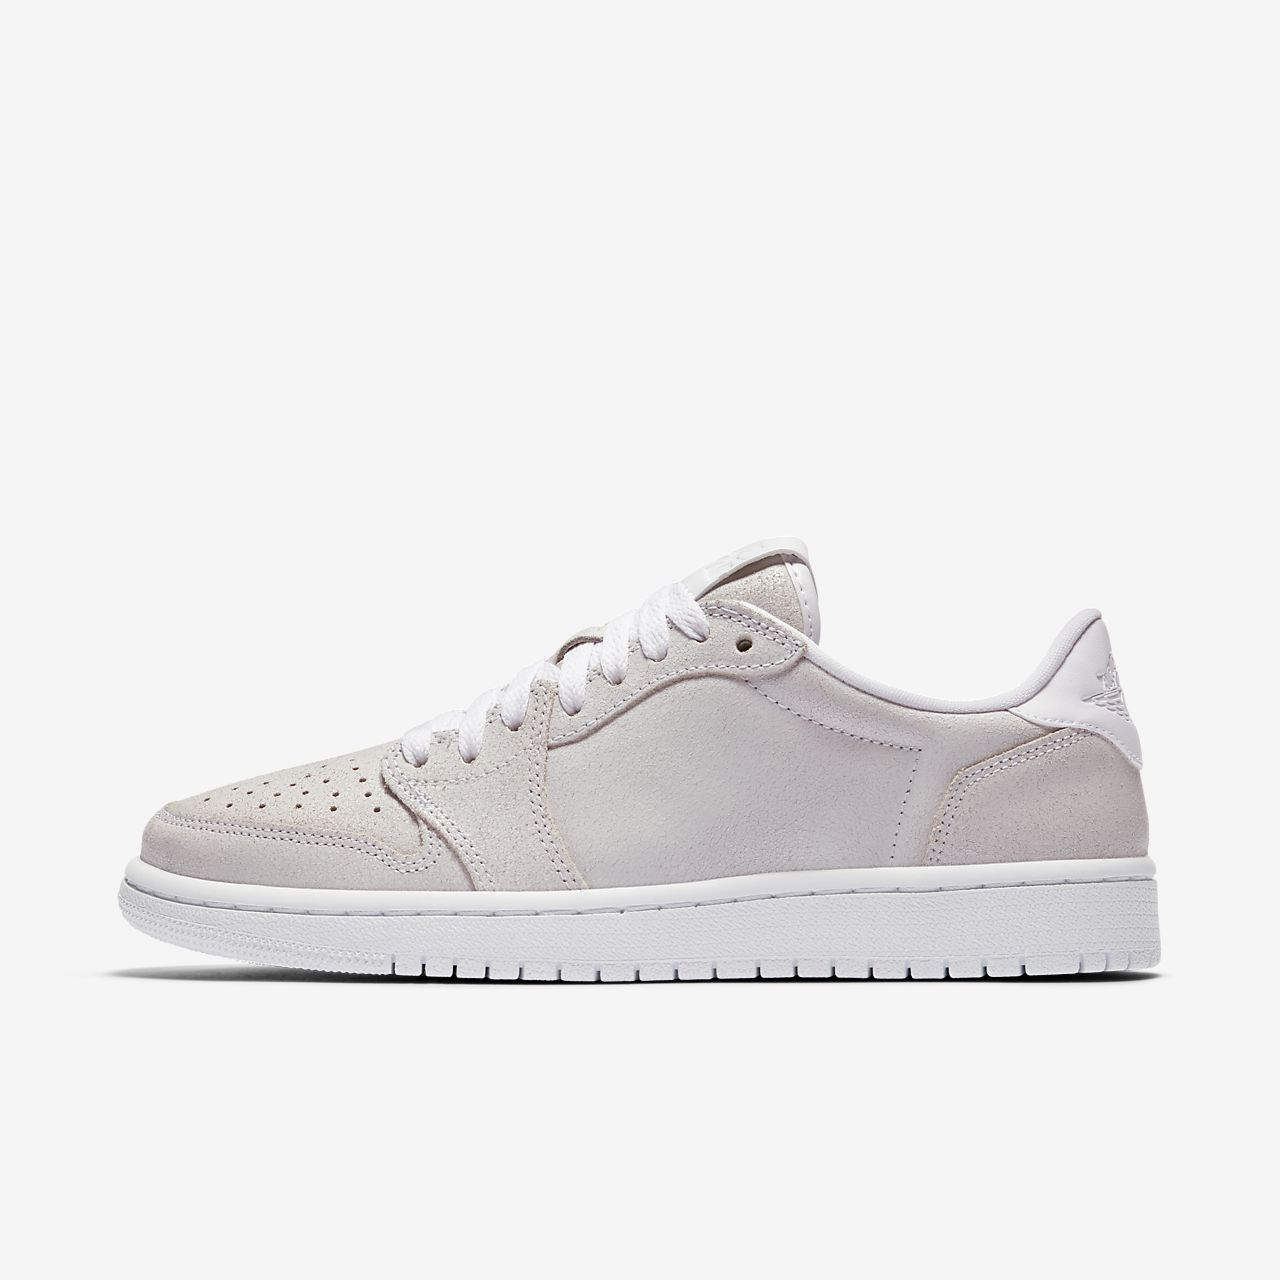 air jordan retro 1 bianche